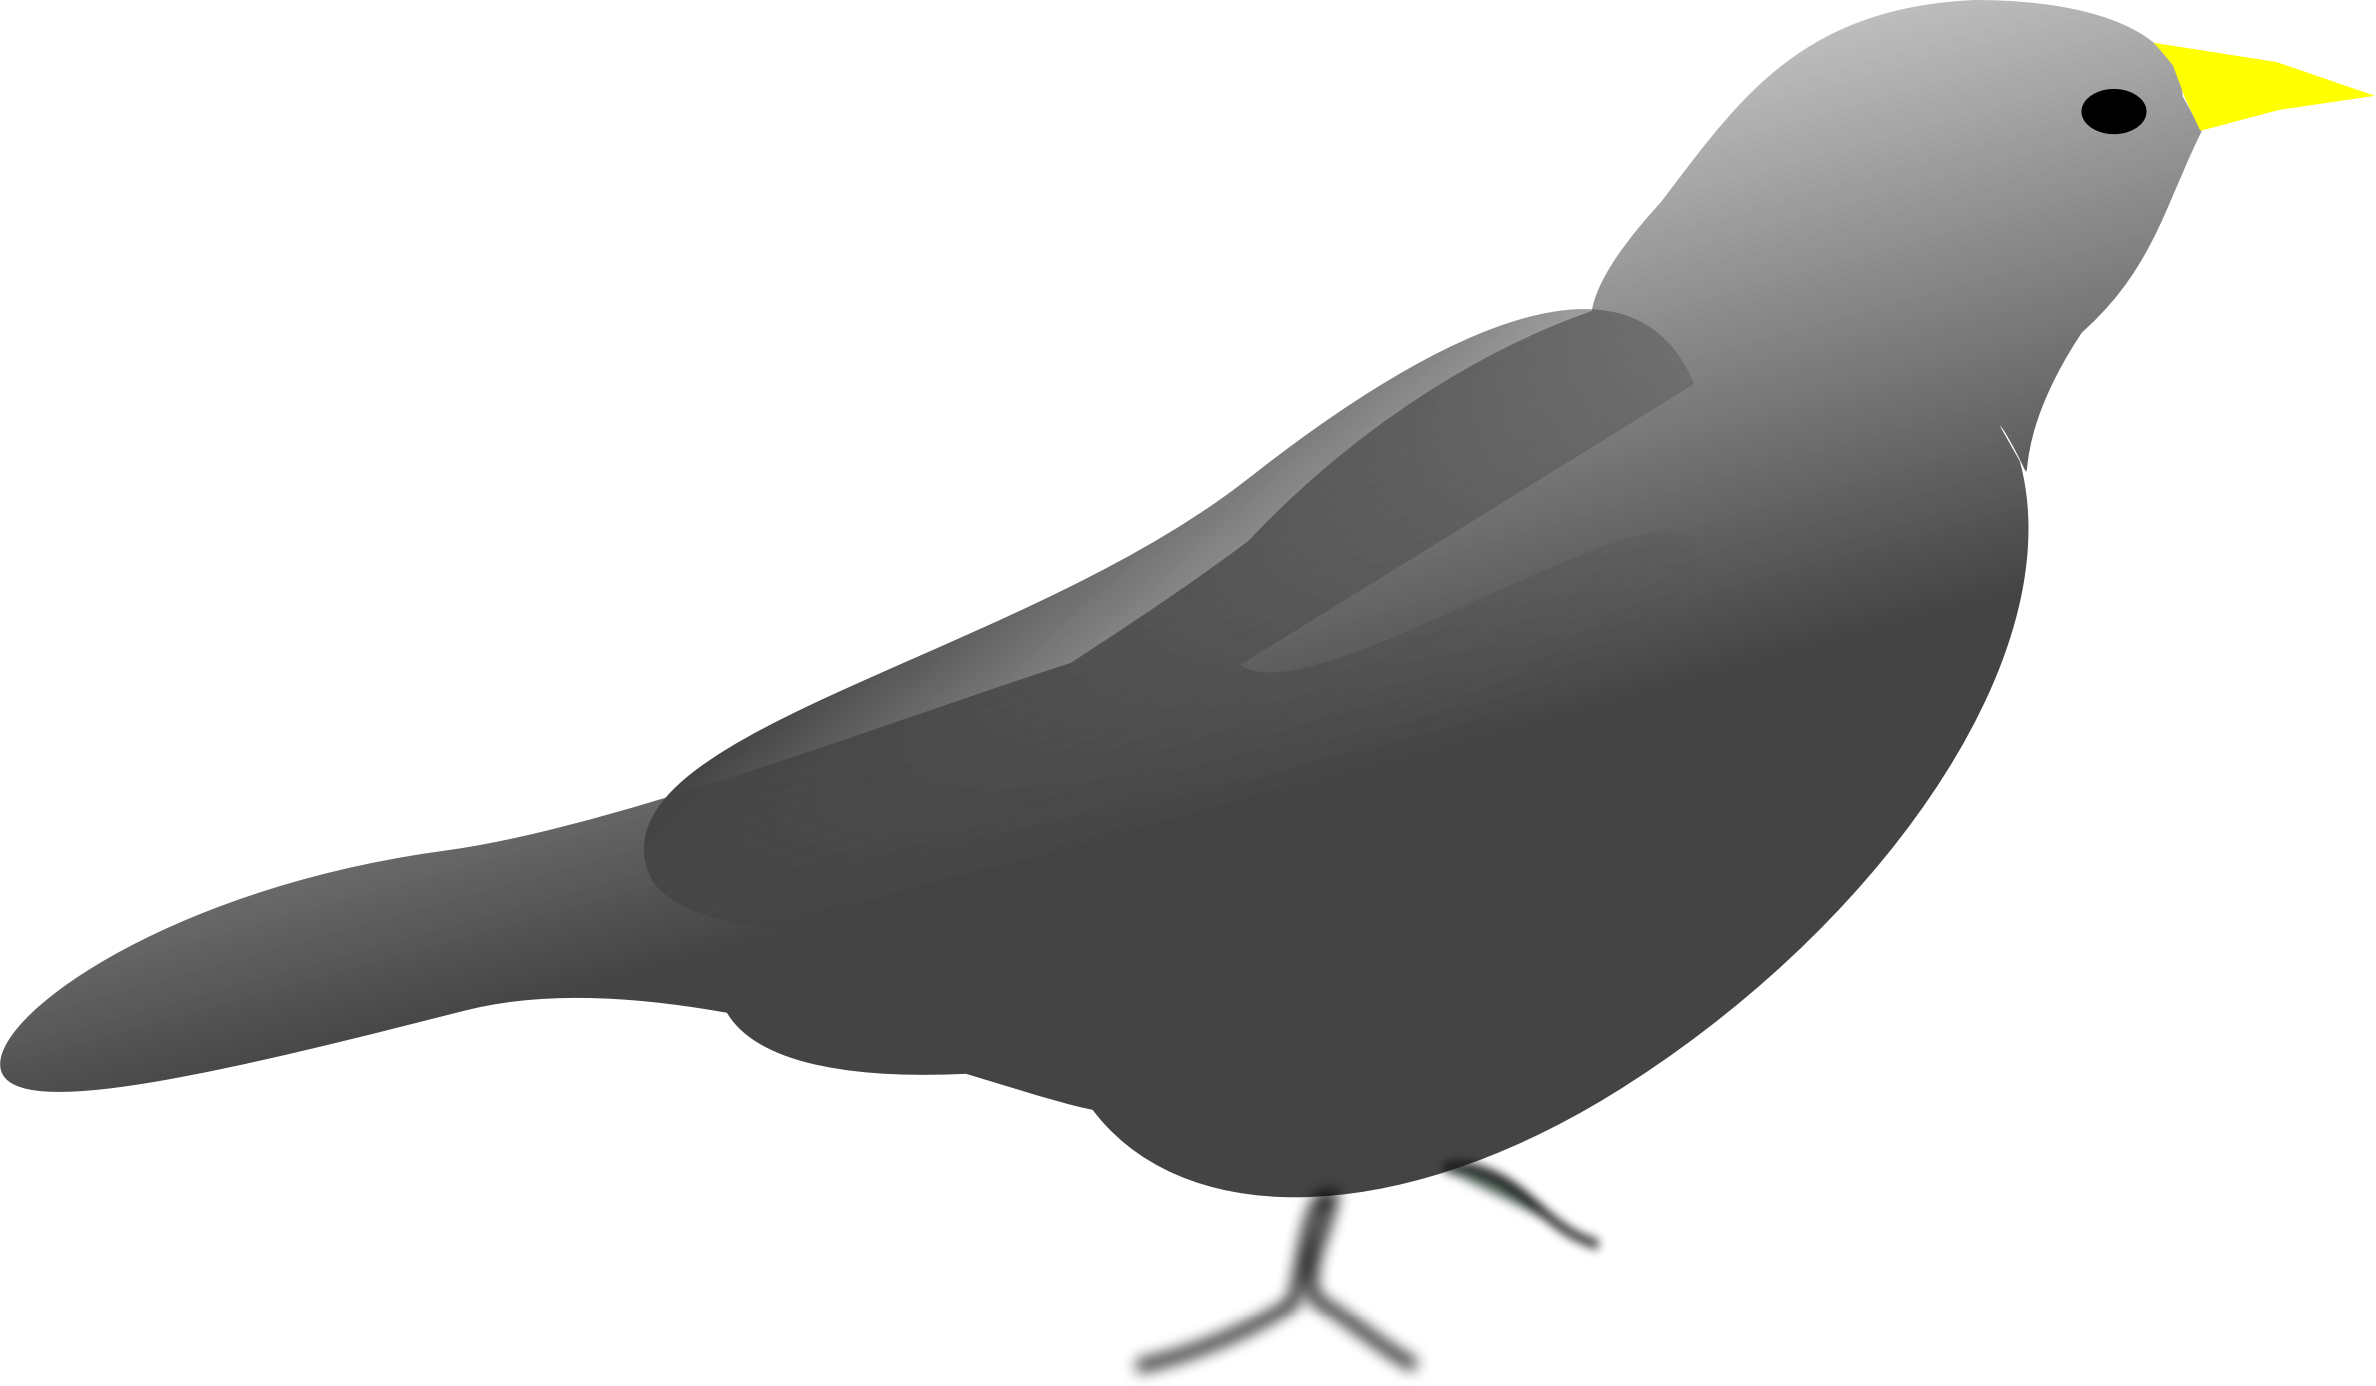 Blackbird1 by user unknown